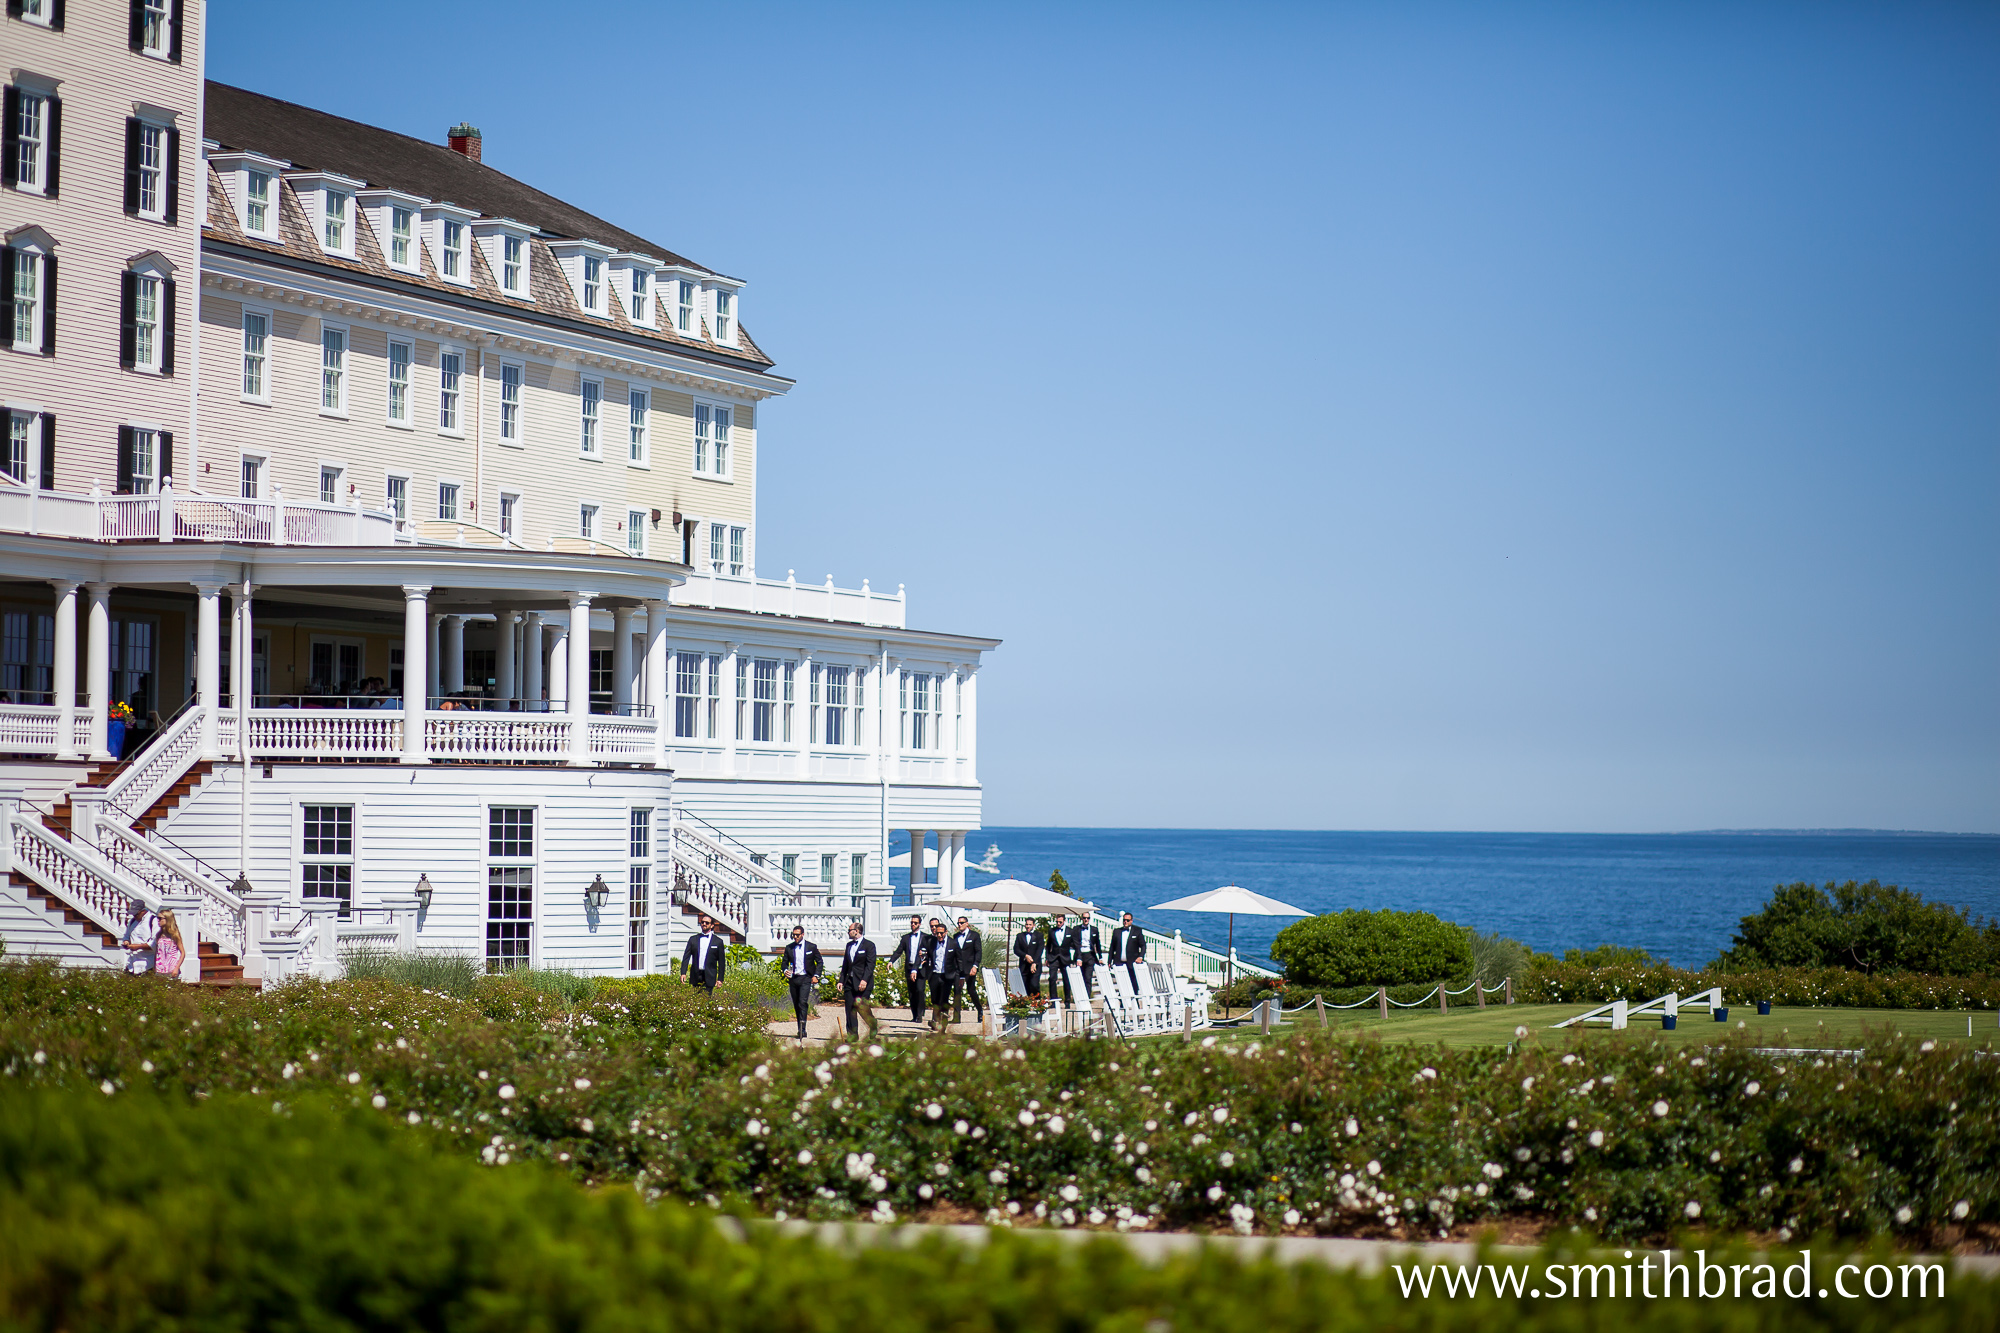 misquamicut_club_wedding_golf_watch_hill_Westerly_Rhode_Island_photography_photographer-15